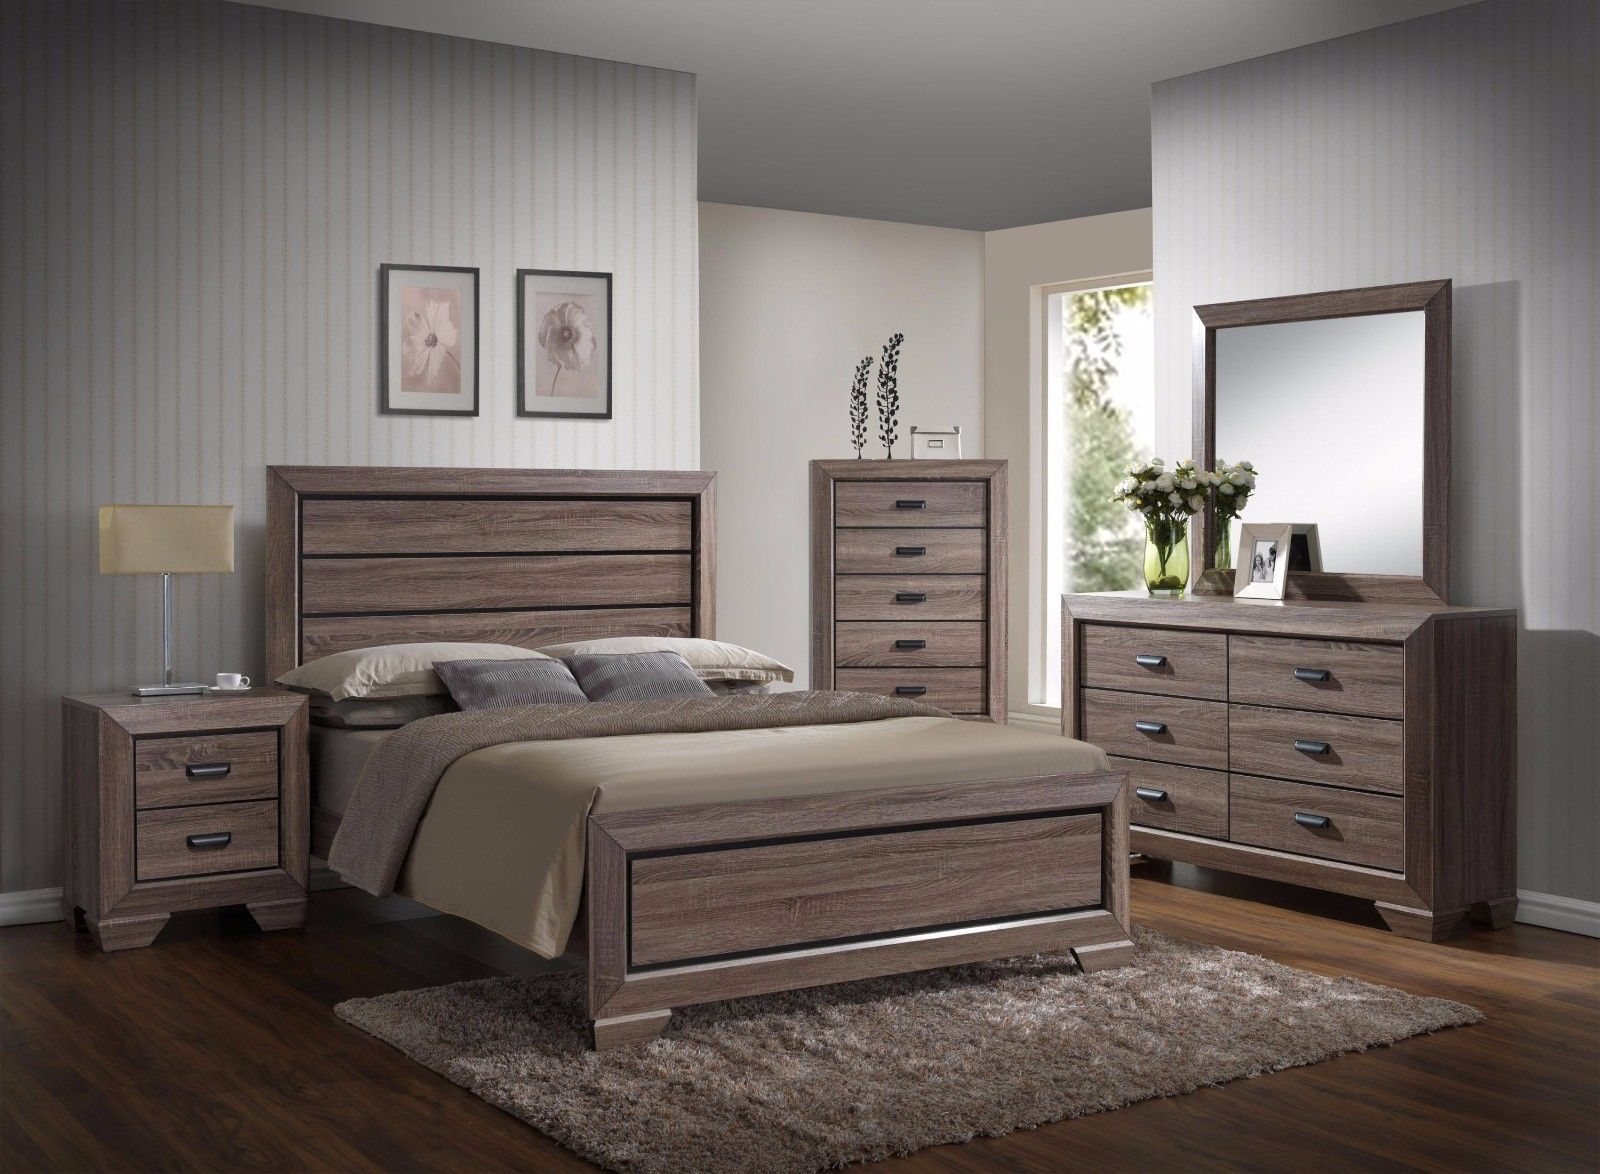 Crown Mark RB5500 Farrow Queen Size Bedroom Set 5pc. Transitional style